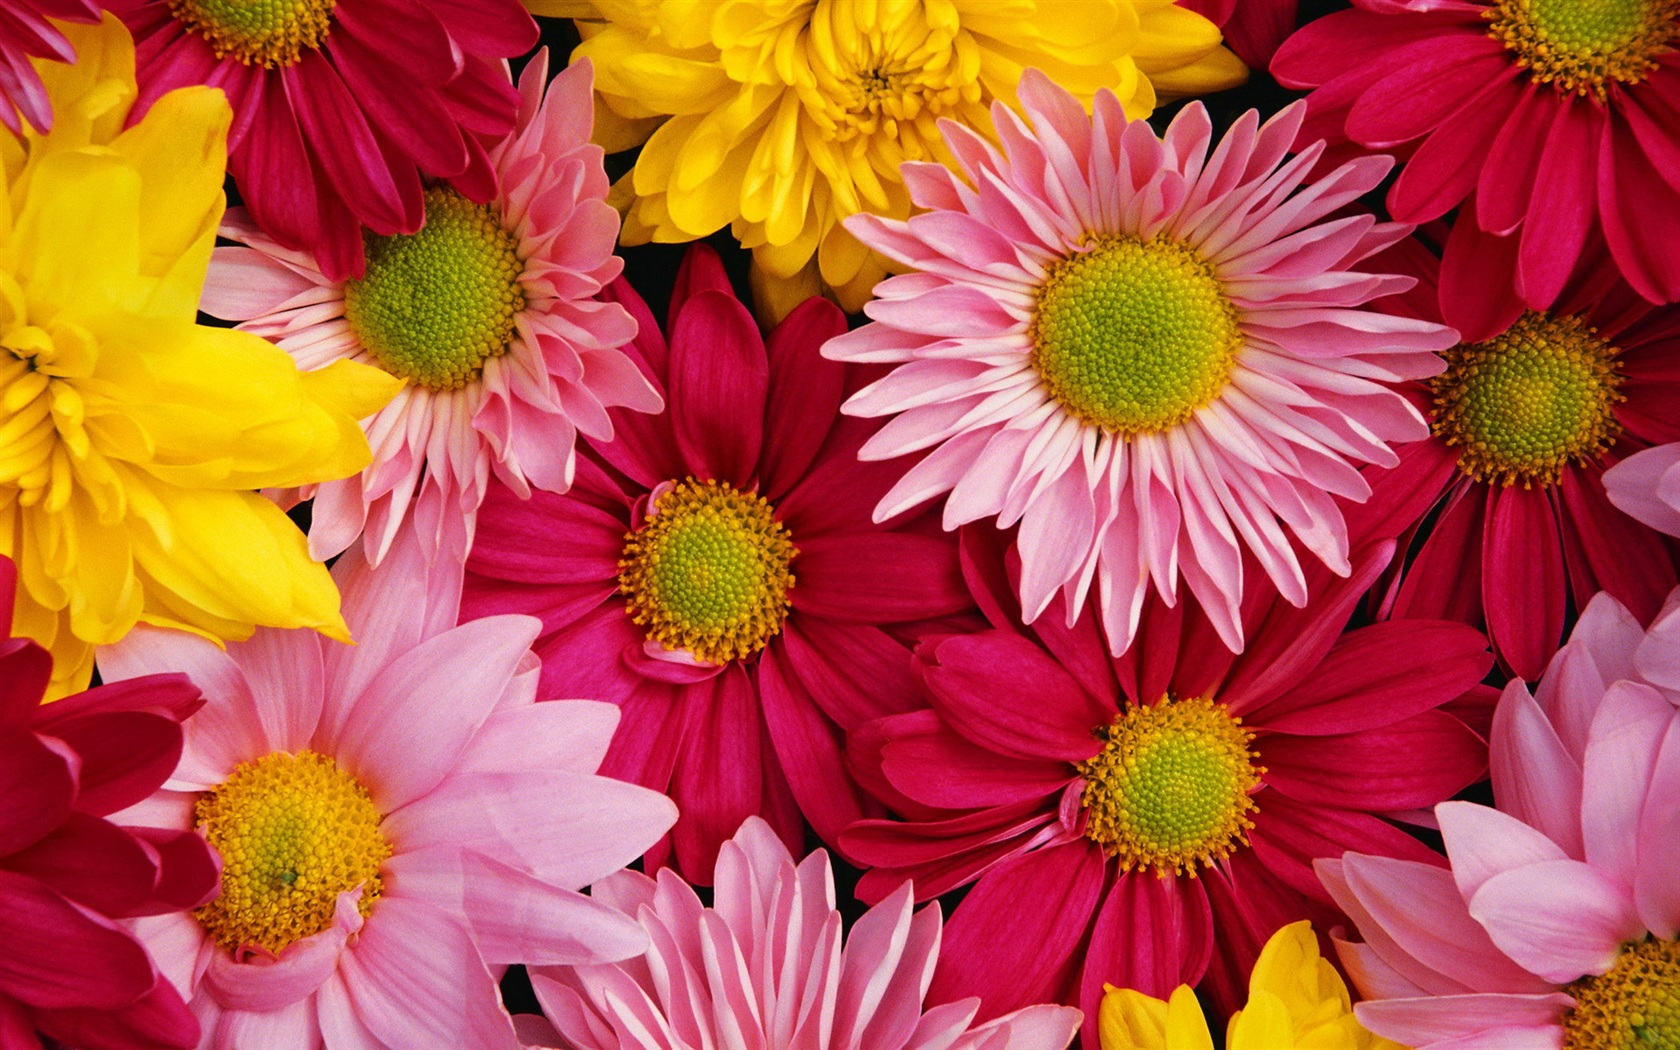 Chrysanthemum; Chrysanthemum Wallpaper; Chrysanthemum Wallpaper ...